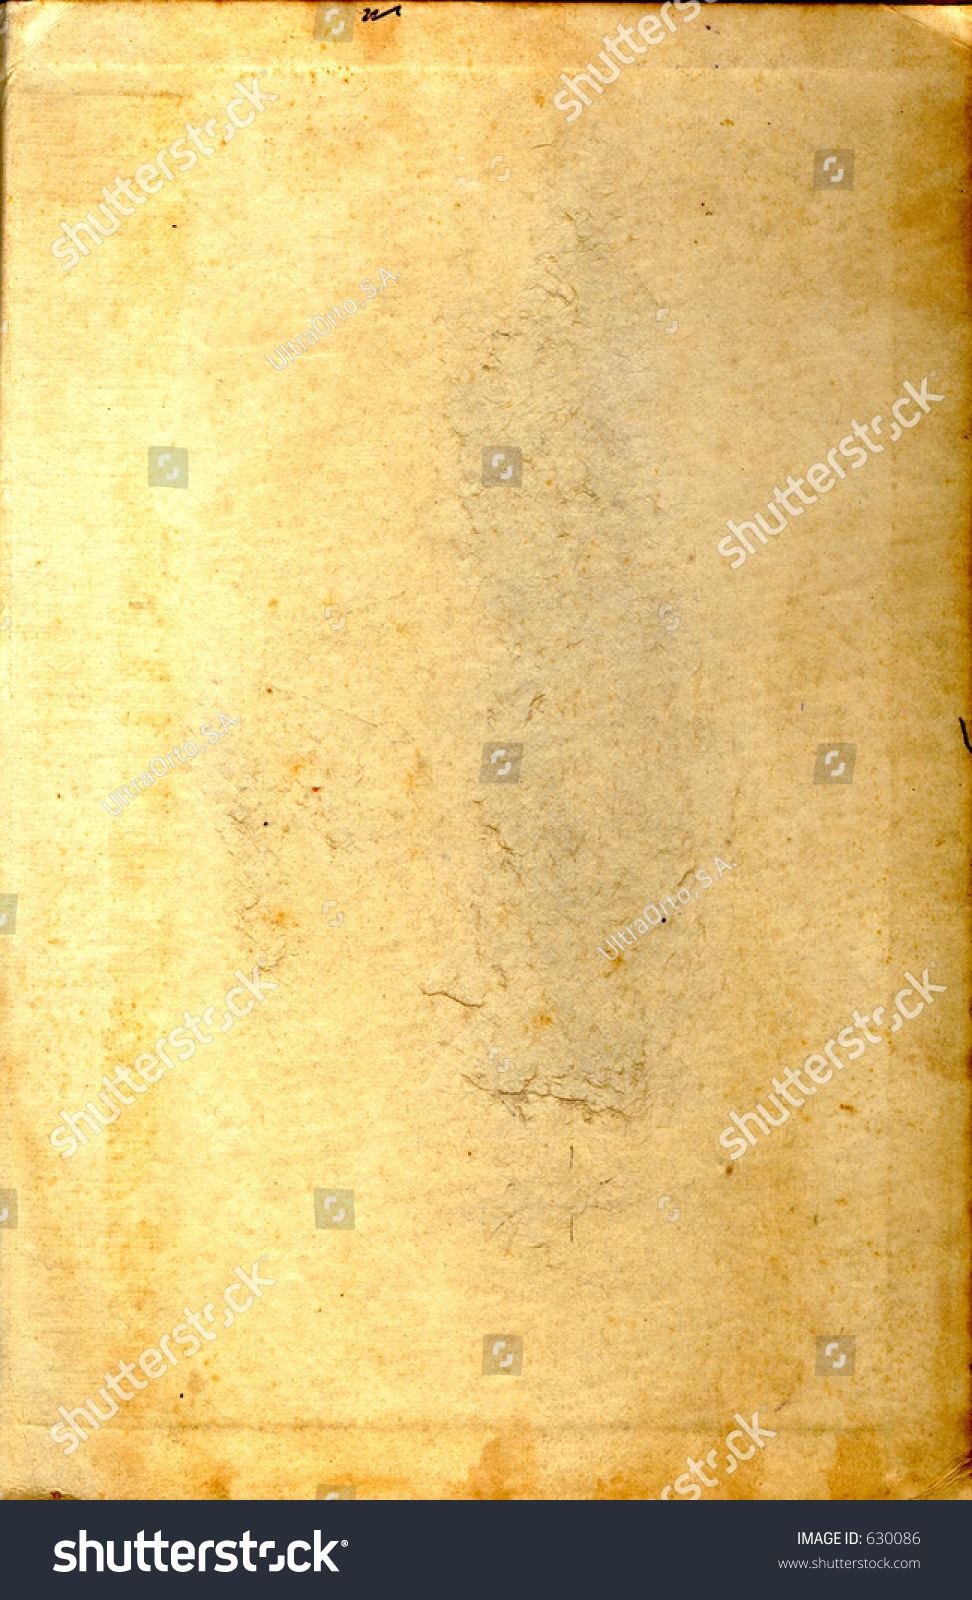 Vintage Book Cover Background : Old book cover pages used for background and patterns in